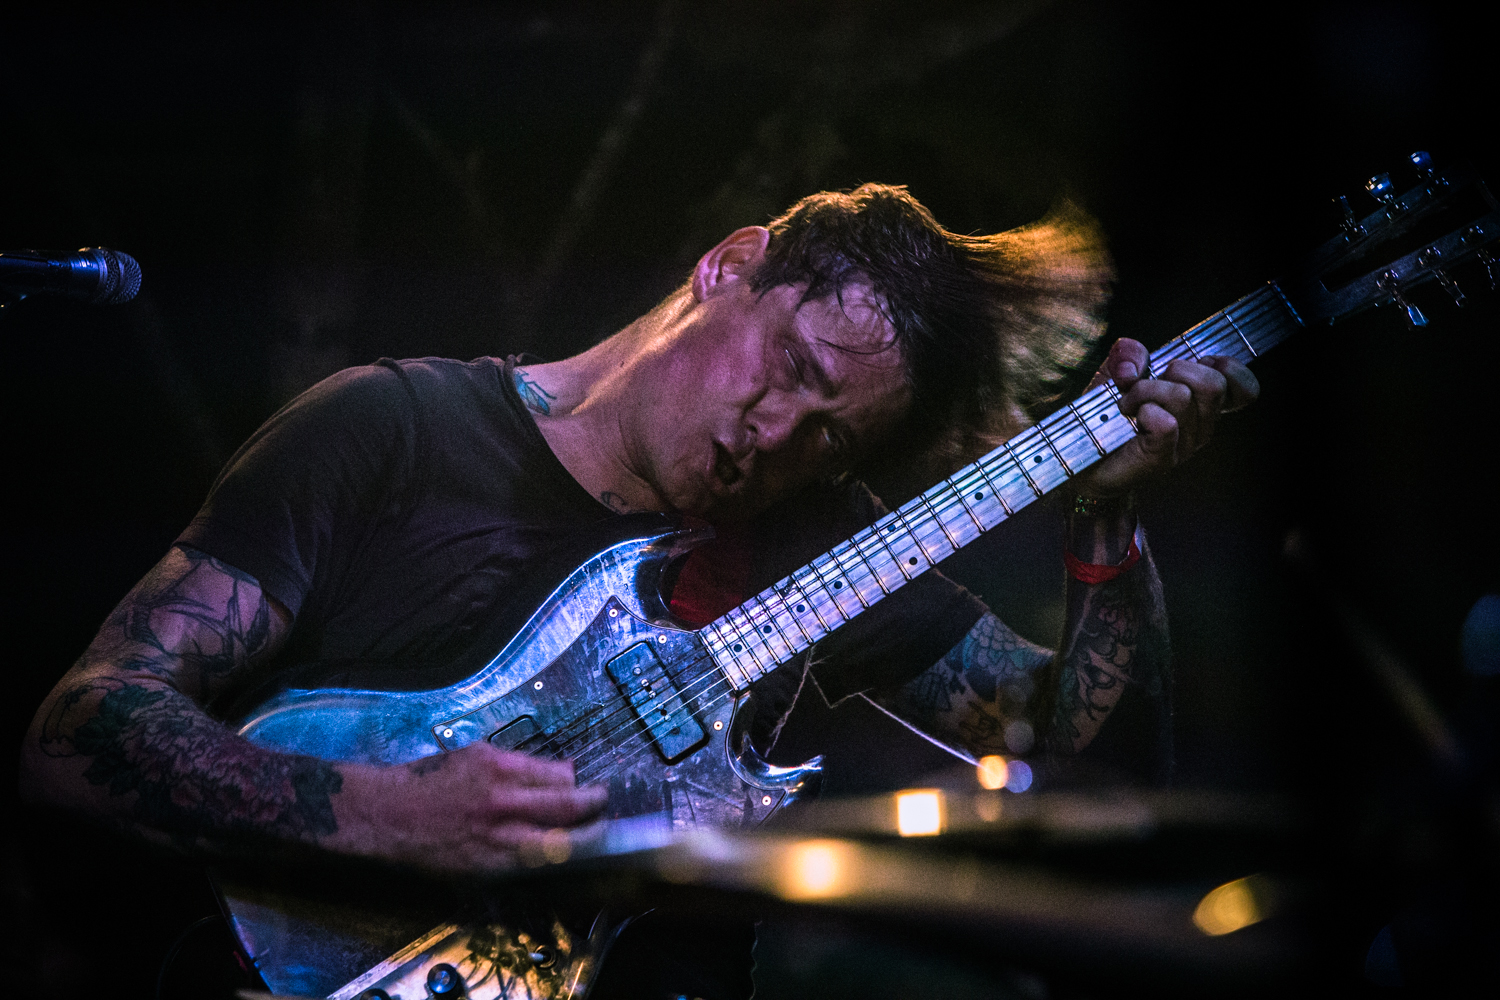 John Dwyer of Thee Oh Sees